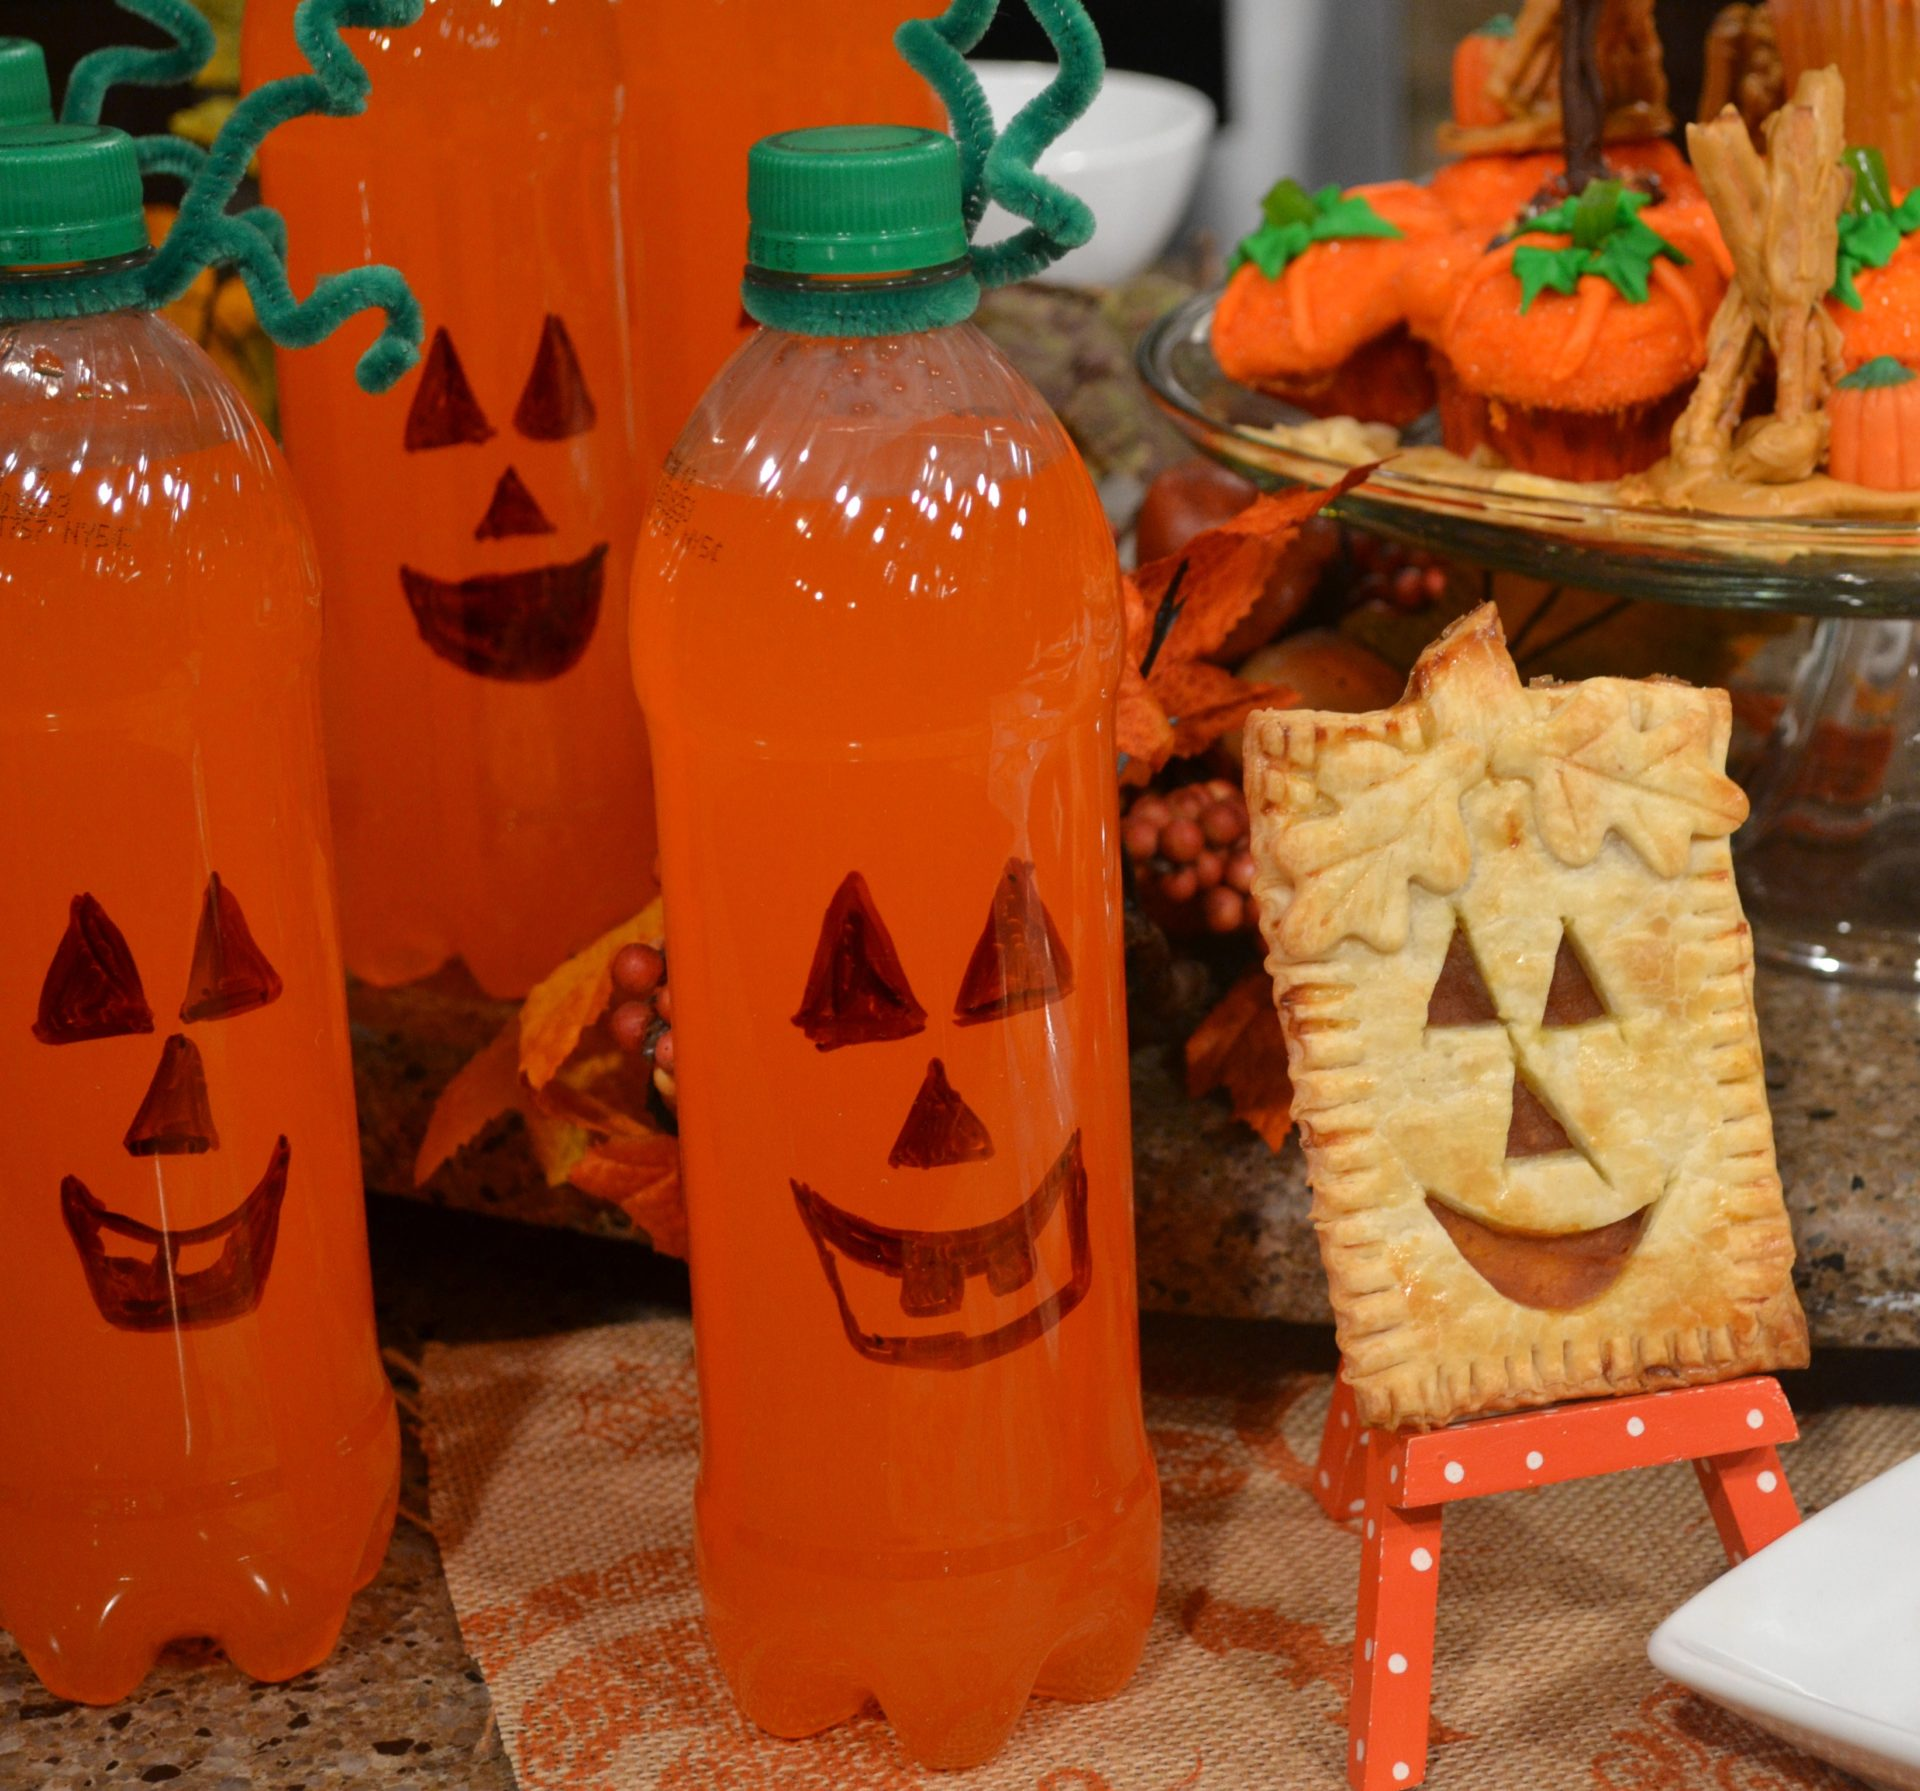 Pumpkin Pop Tarts and Orange Drinks